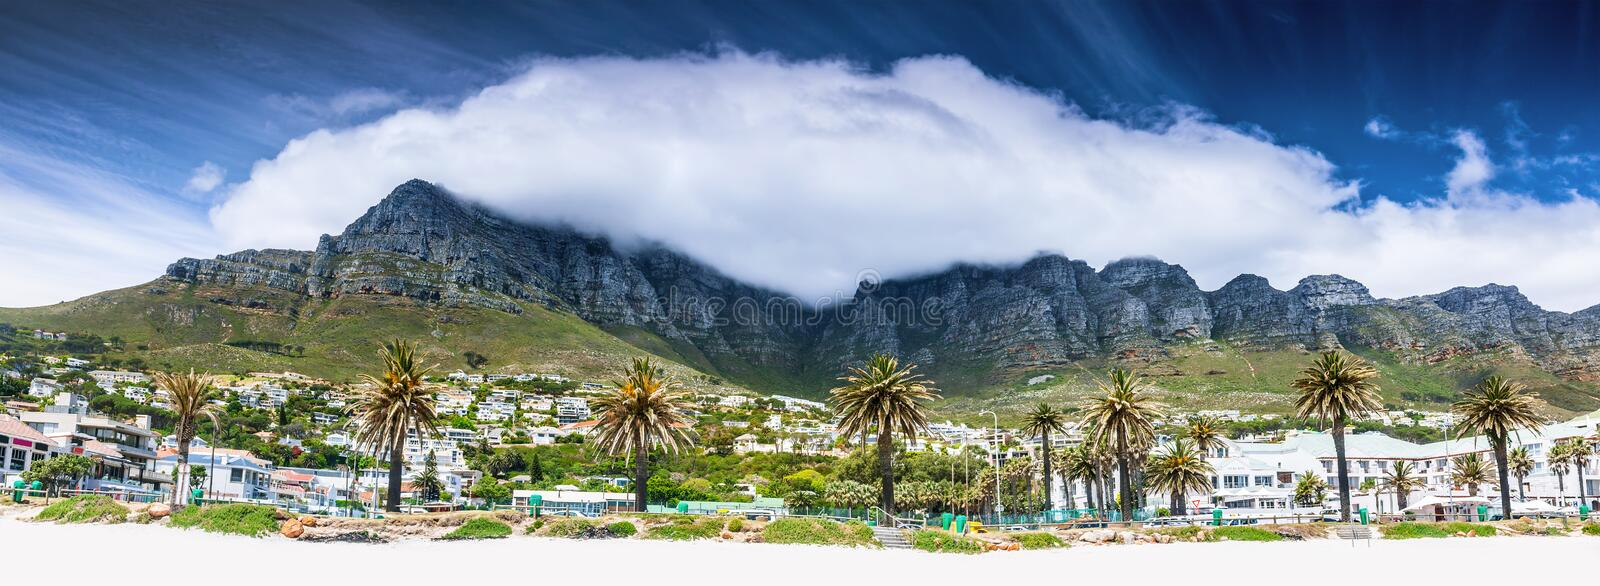 Plage de Cape Town images stock